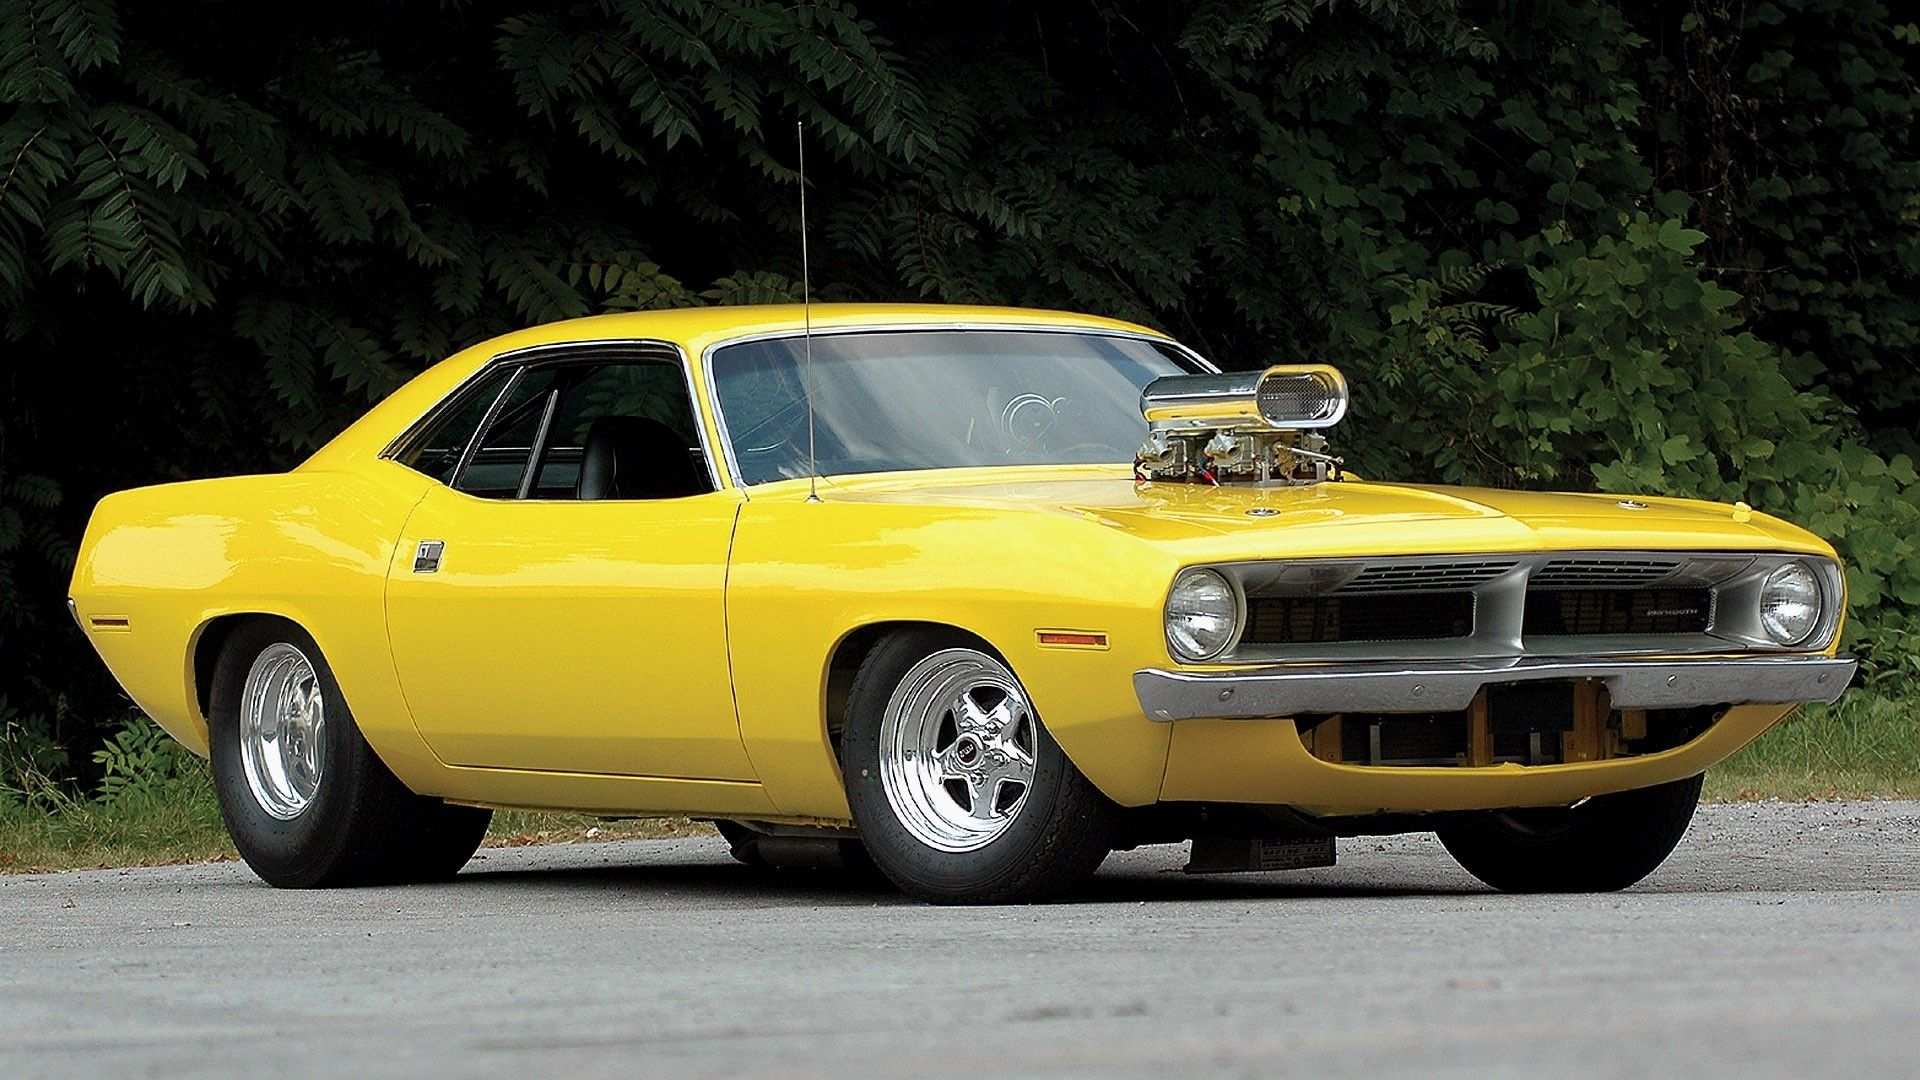 Yellow Muscle Car Plymouth Barracuda Hot Rod Tuning Yellow